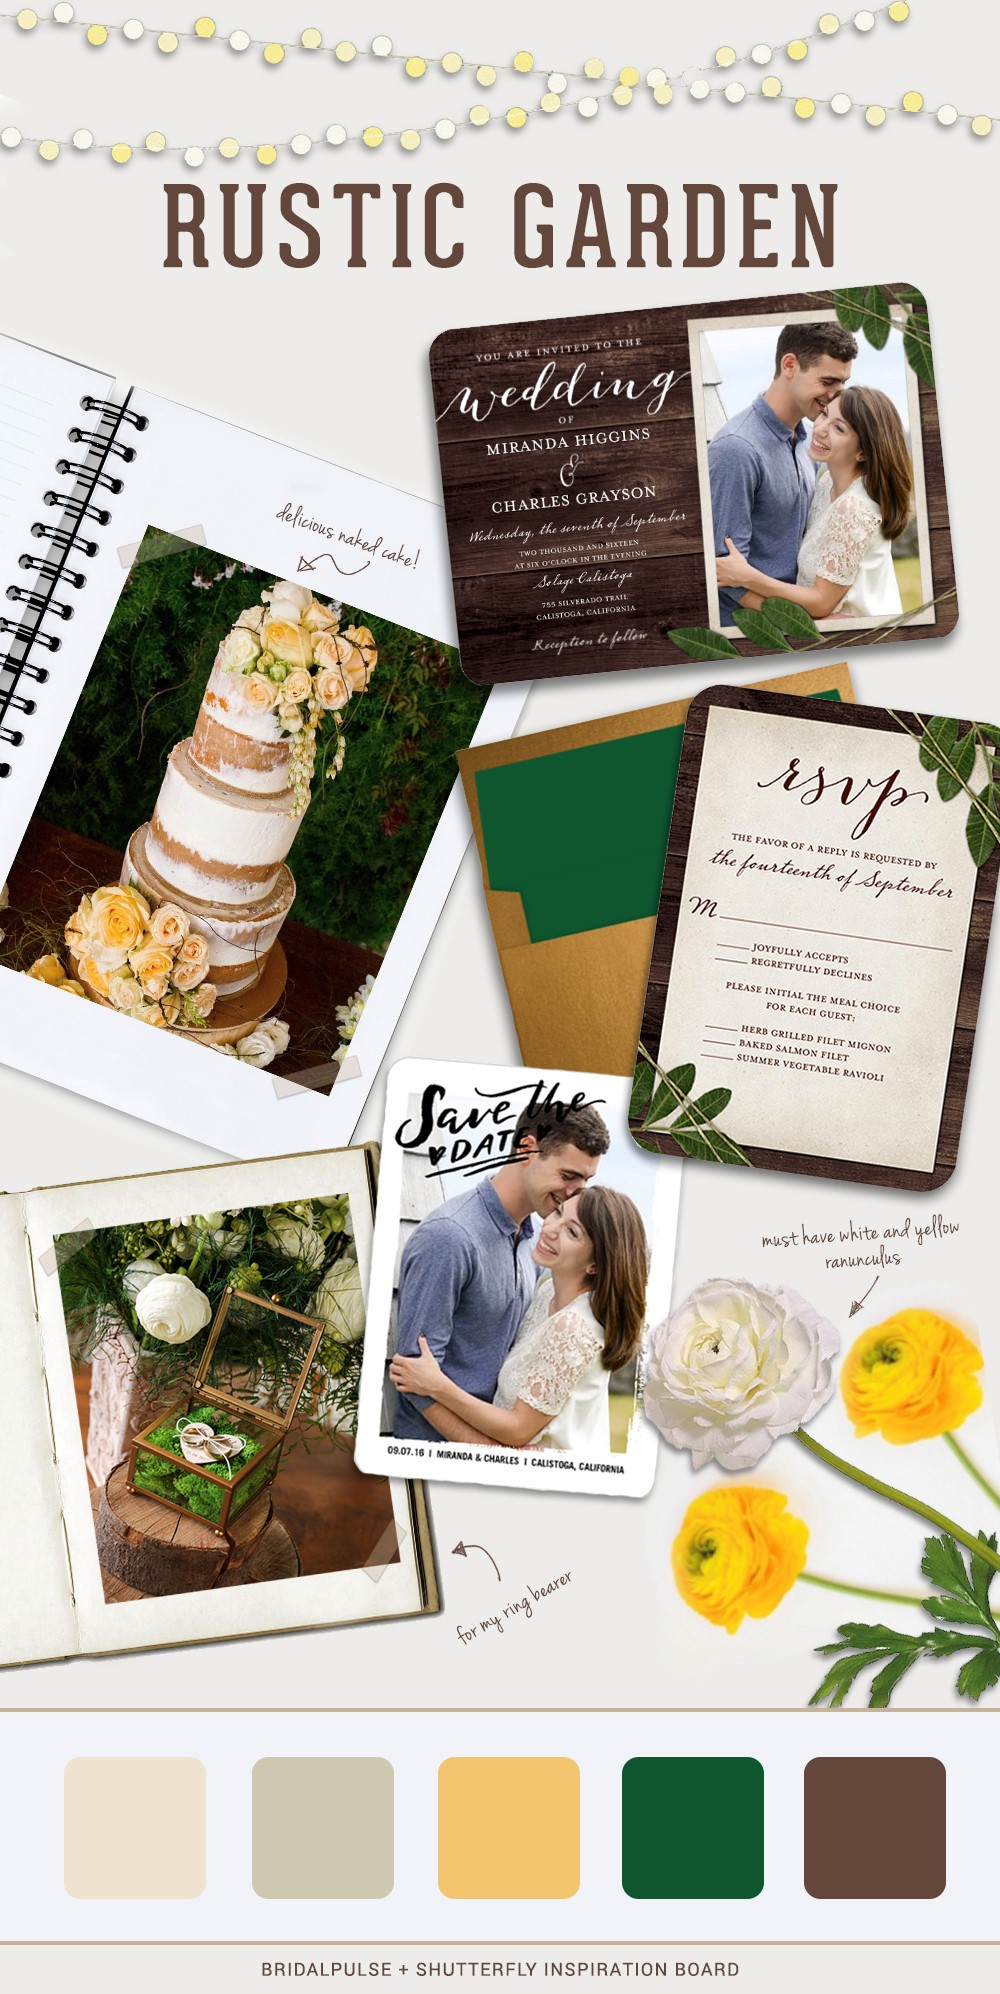 wedding inspiration board rustic garden wedding shutterfly